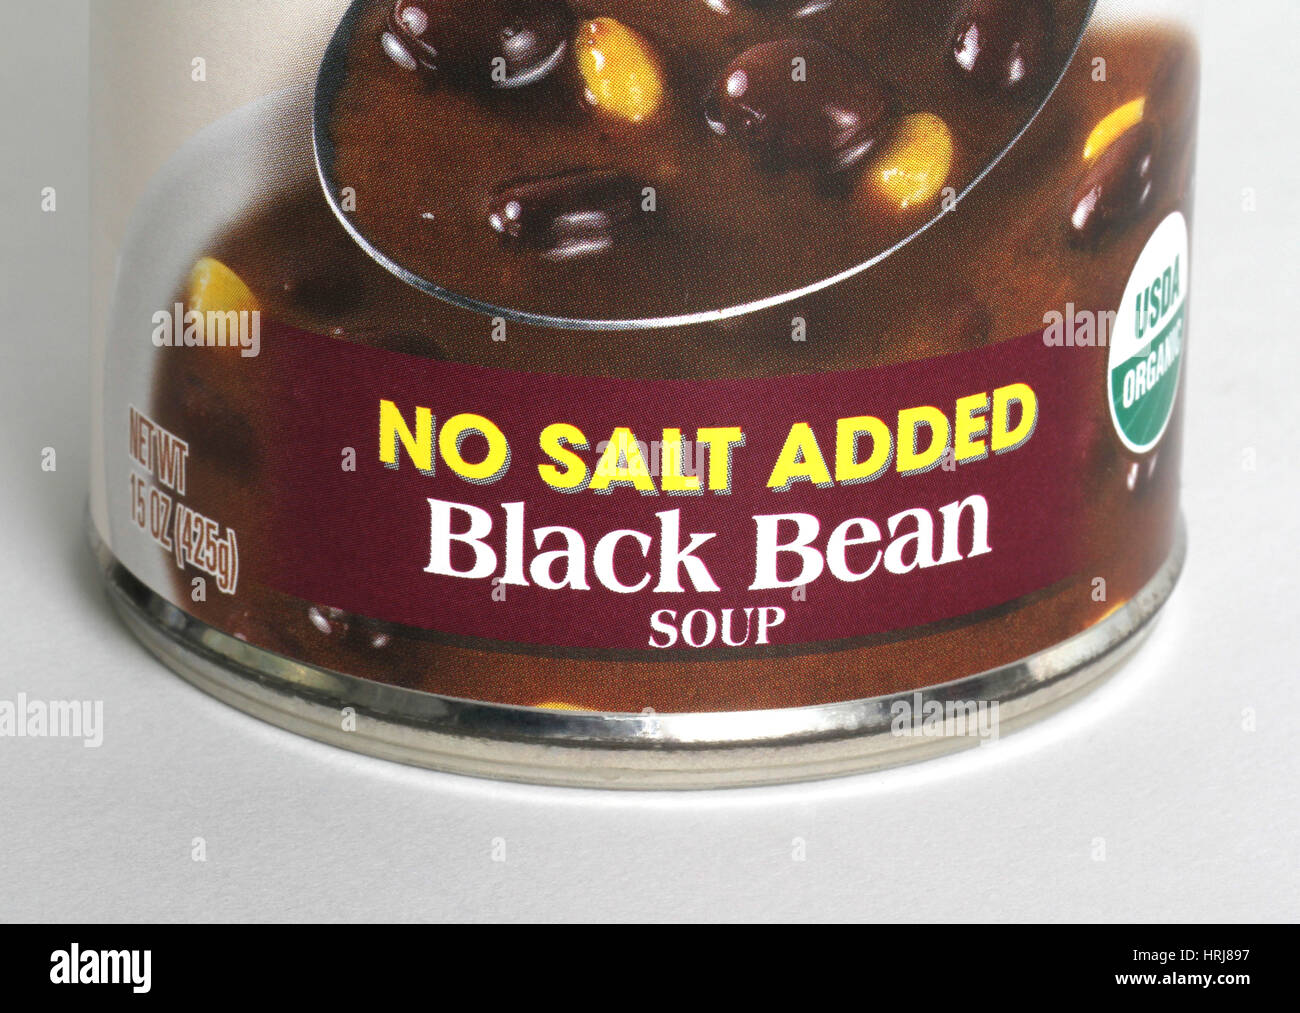 Organic Black Bean Soup with No Salt Added - Stock Image